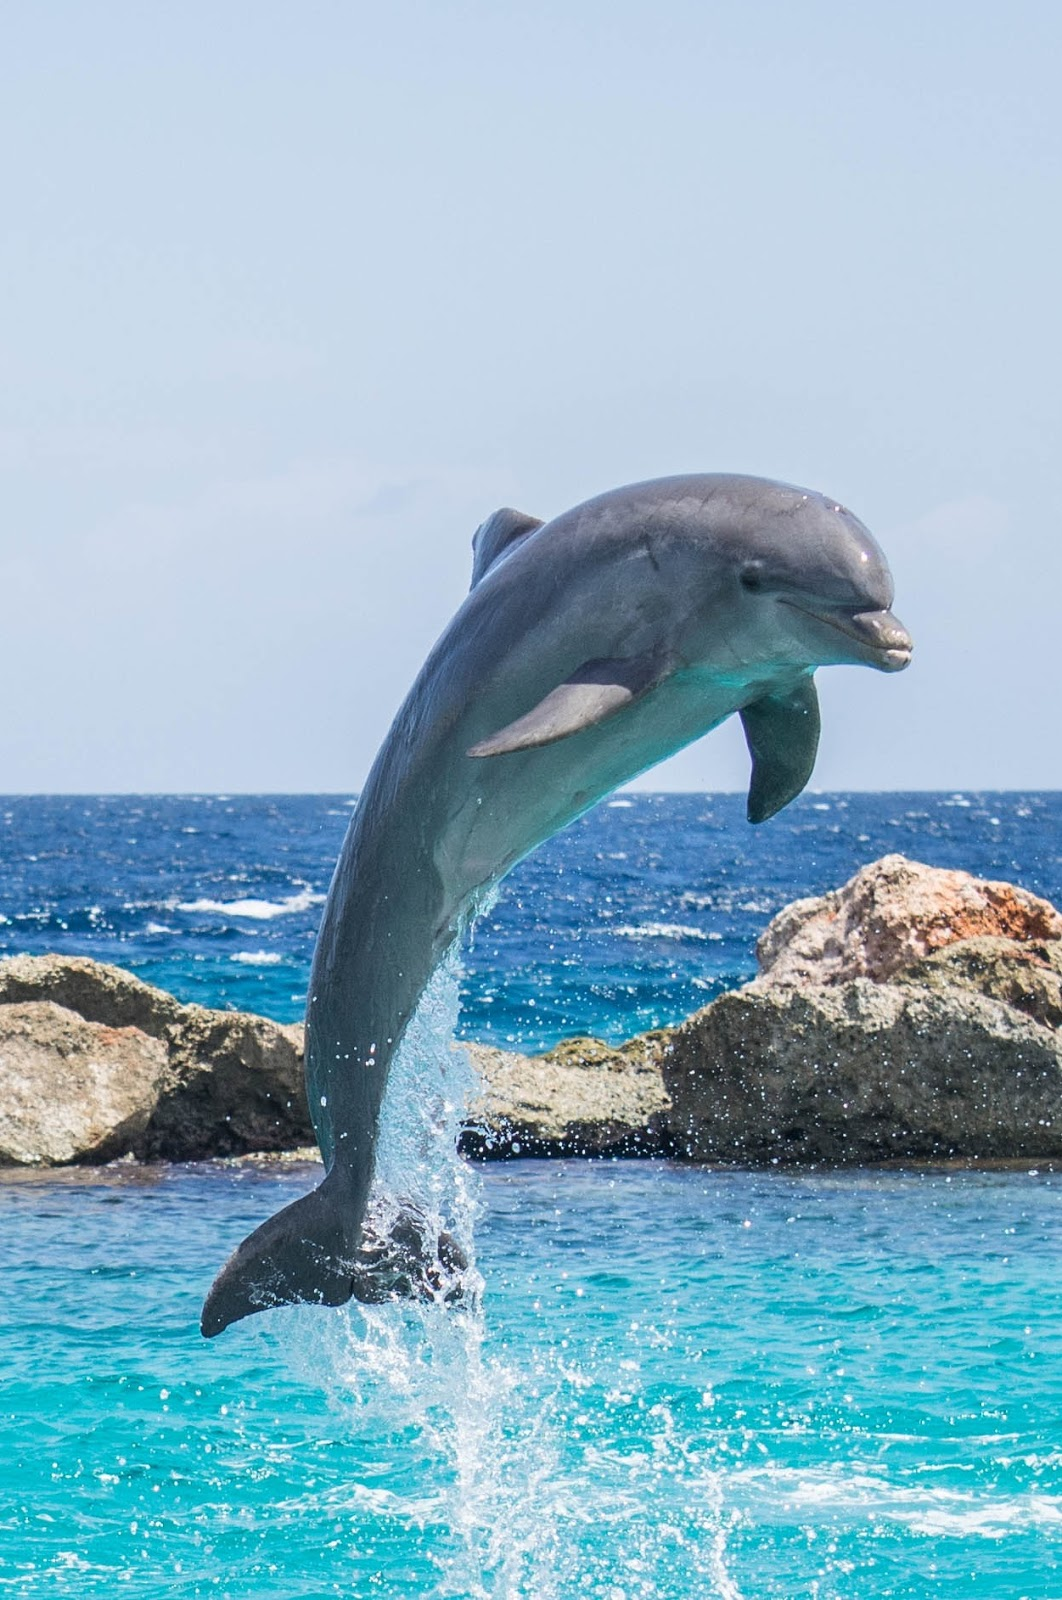 A dolphin jumping from the water.